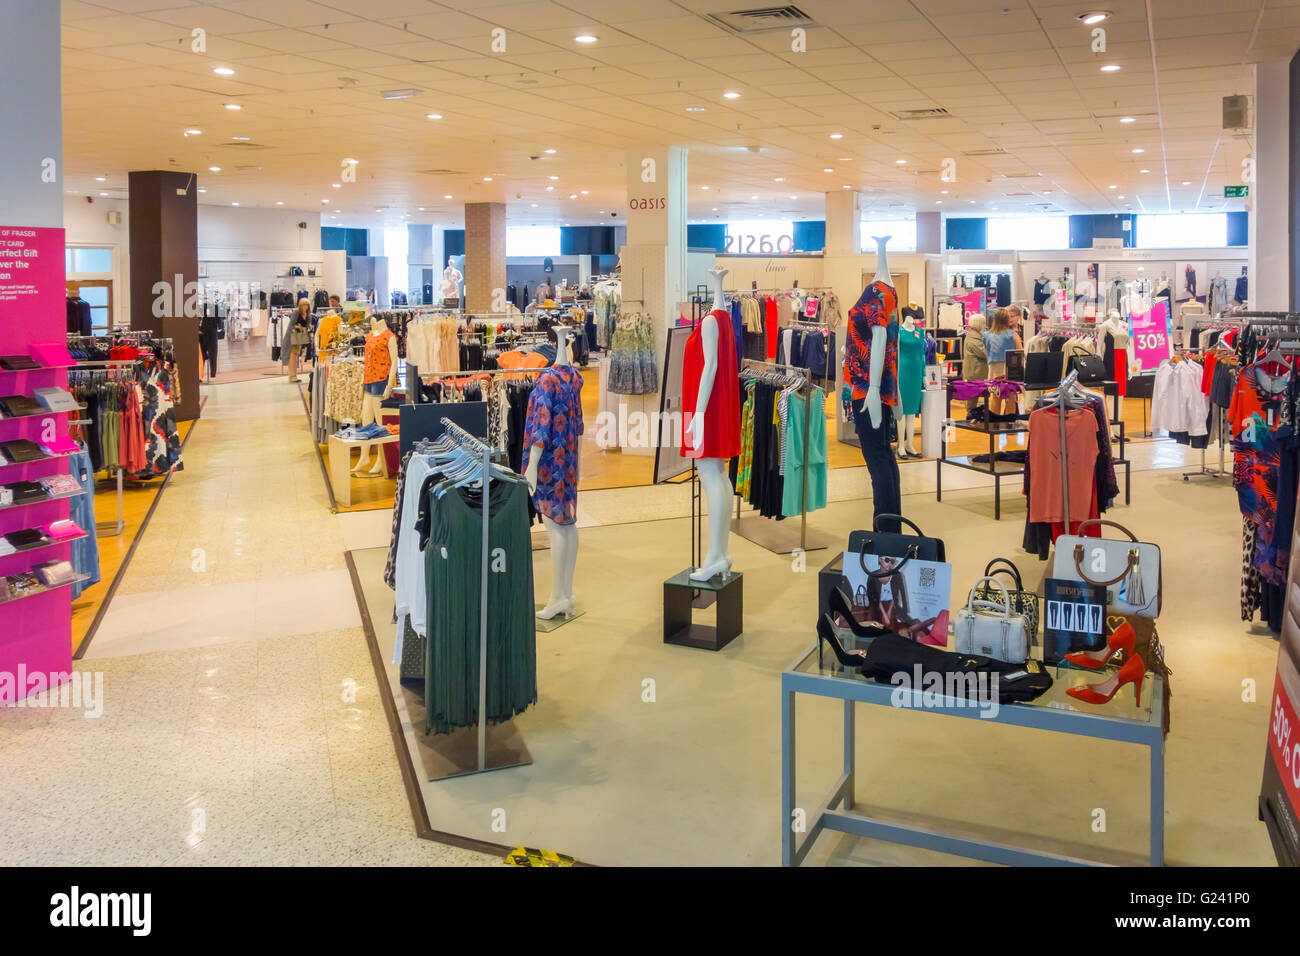 b755d6ccd0c Department store womens fashion clothing department Spring 2016 empty shop  no customers - Stock Image